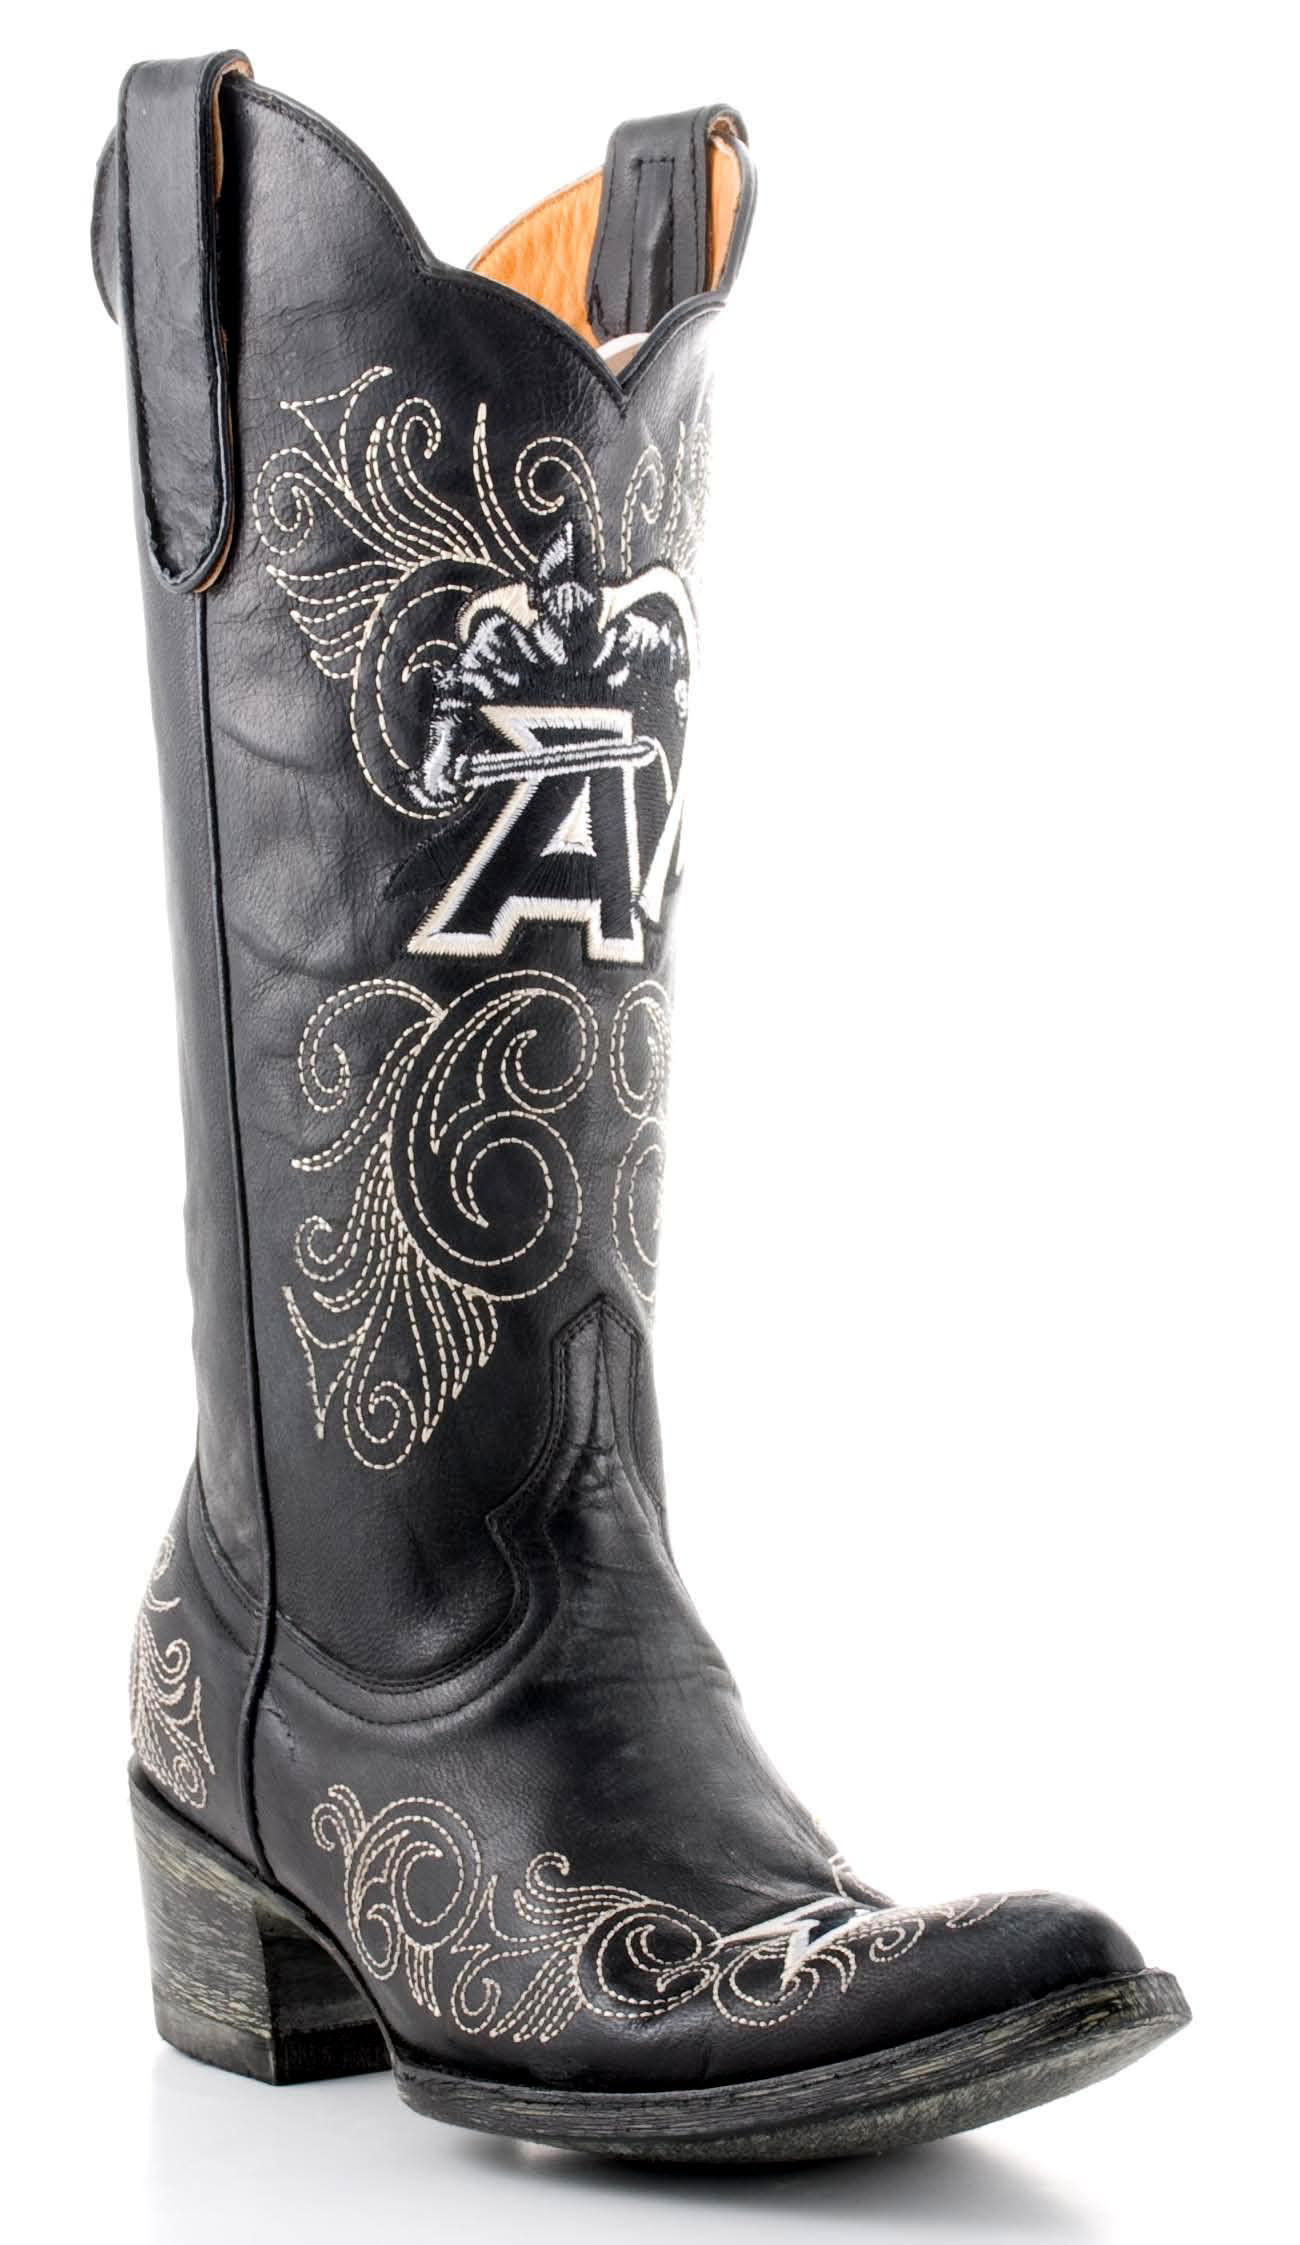 "Gameday Boots Womens 13"" Tall Leather Army Cowboy Boots ARM-L022 New by GameDay Boots"